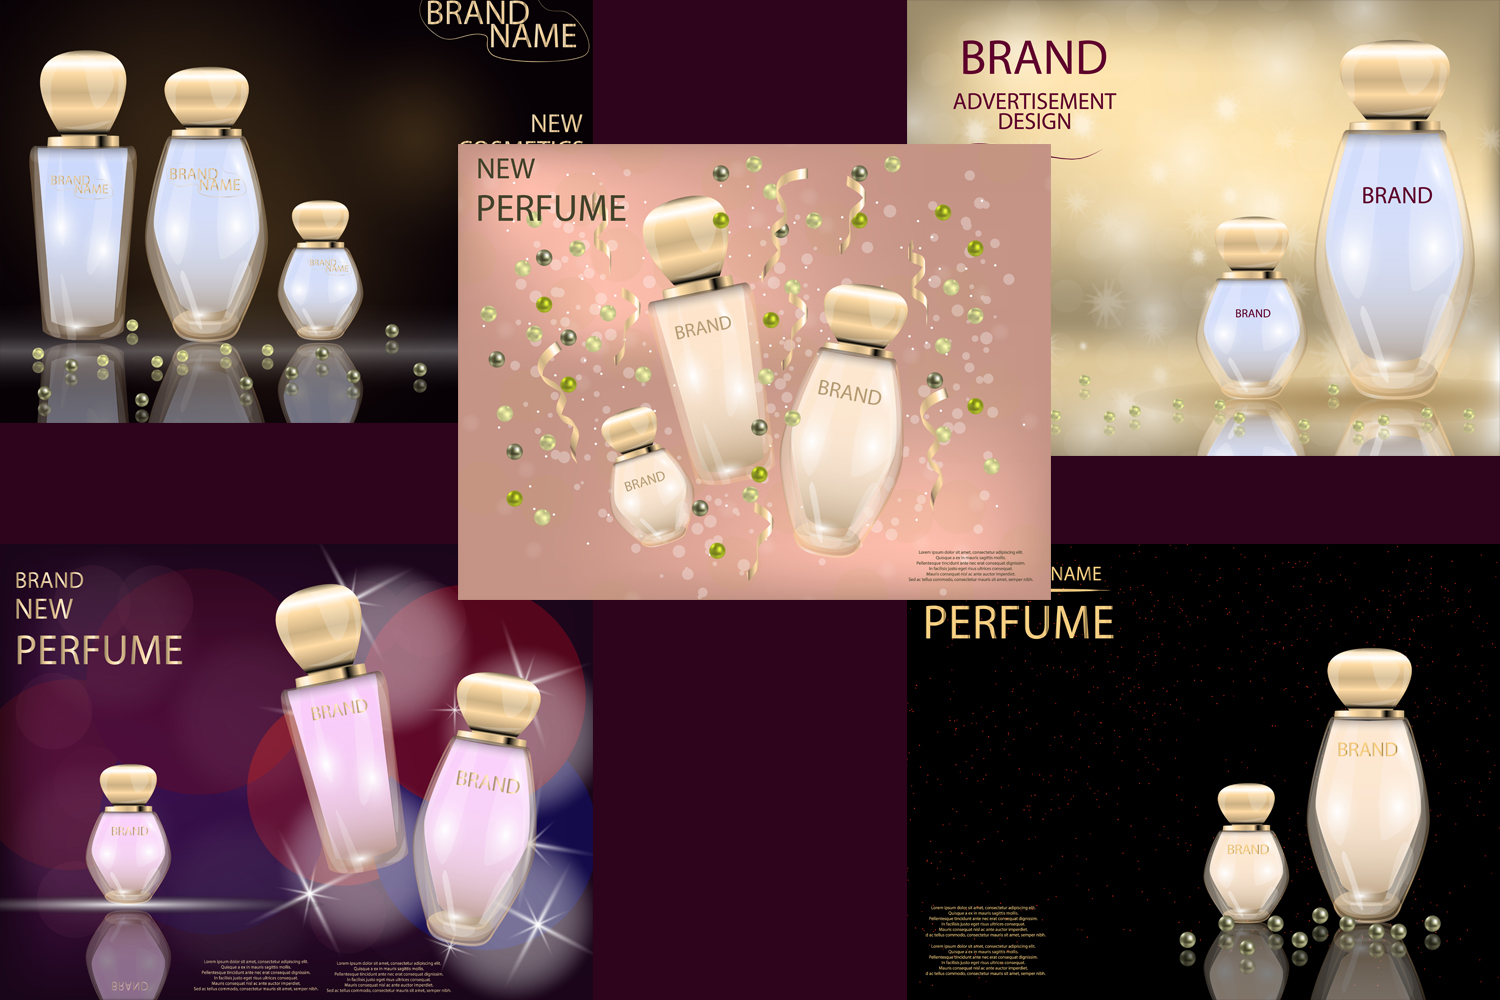 Glamorous Perfume Glass Bottles  Mock-up, 3D Realistic Vector Illustration, Template example image 2